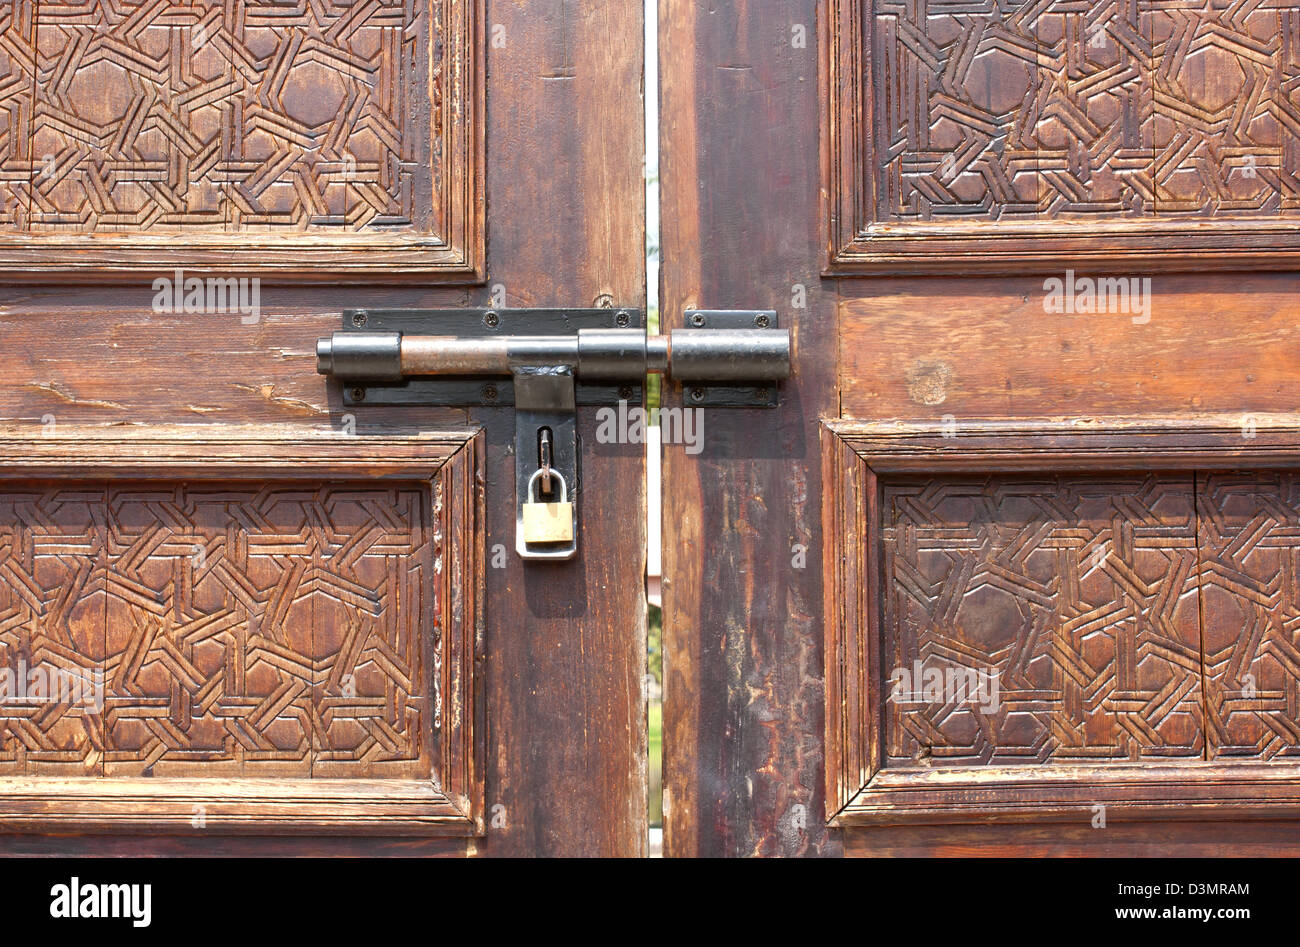 Old fashioned door key stock photos old fashioned door - Old fashioned interior door locks ...